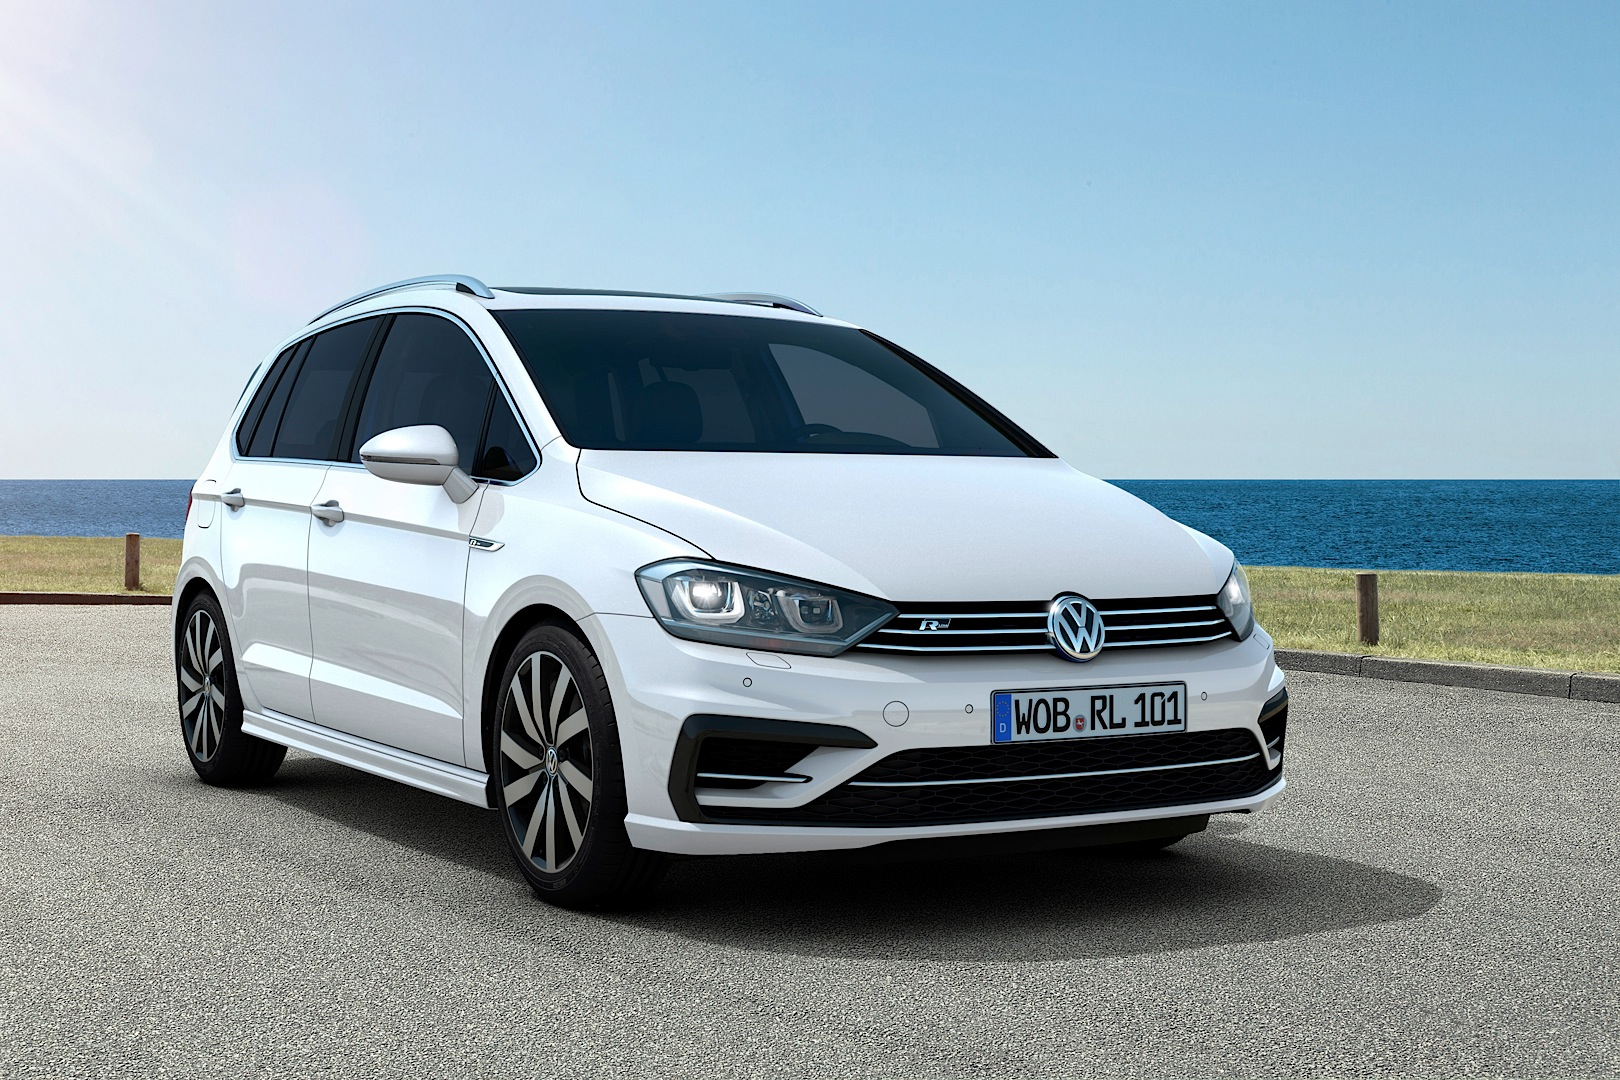 Audi Buy Now Pay In 2019 >> Volskwagen Golf Sportsvan Gets R-Line Package for the Exterior and Interior - autoevolution